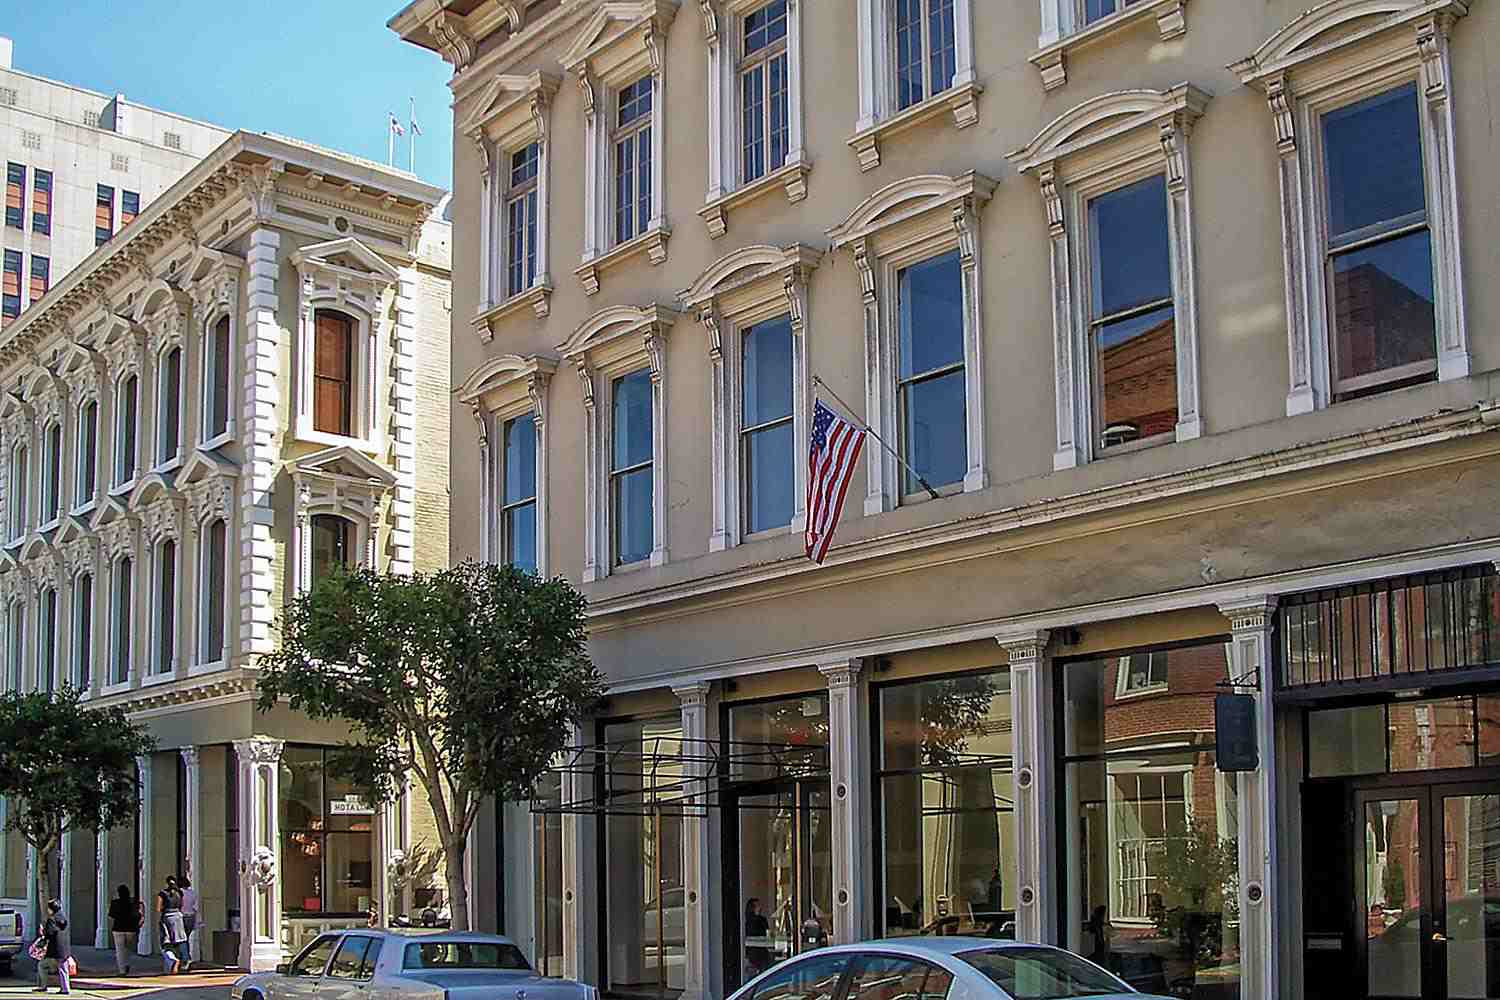 Hotaling Place in Jackson Square, San Francisco